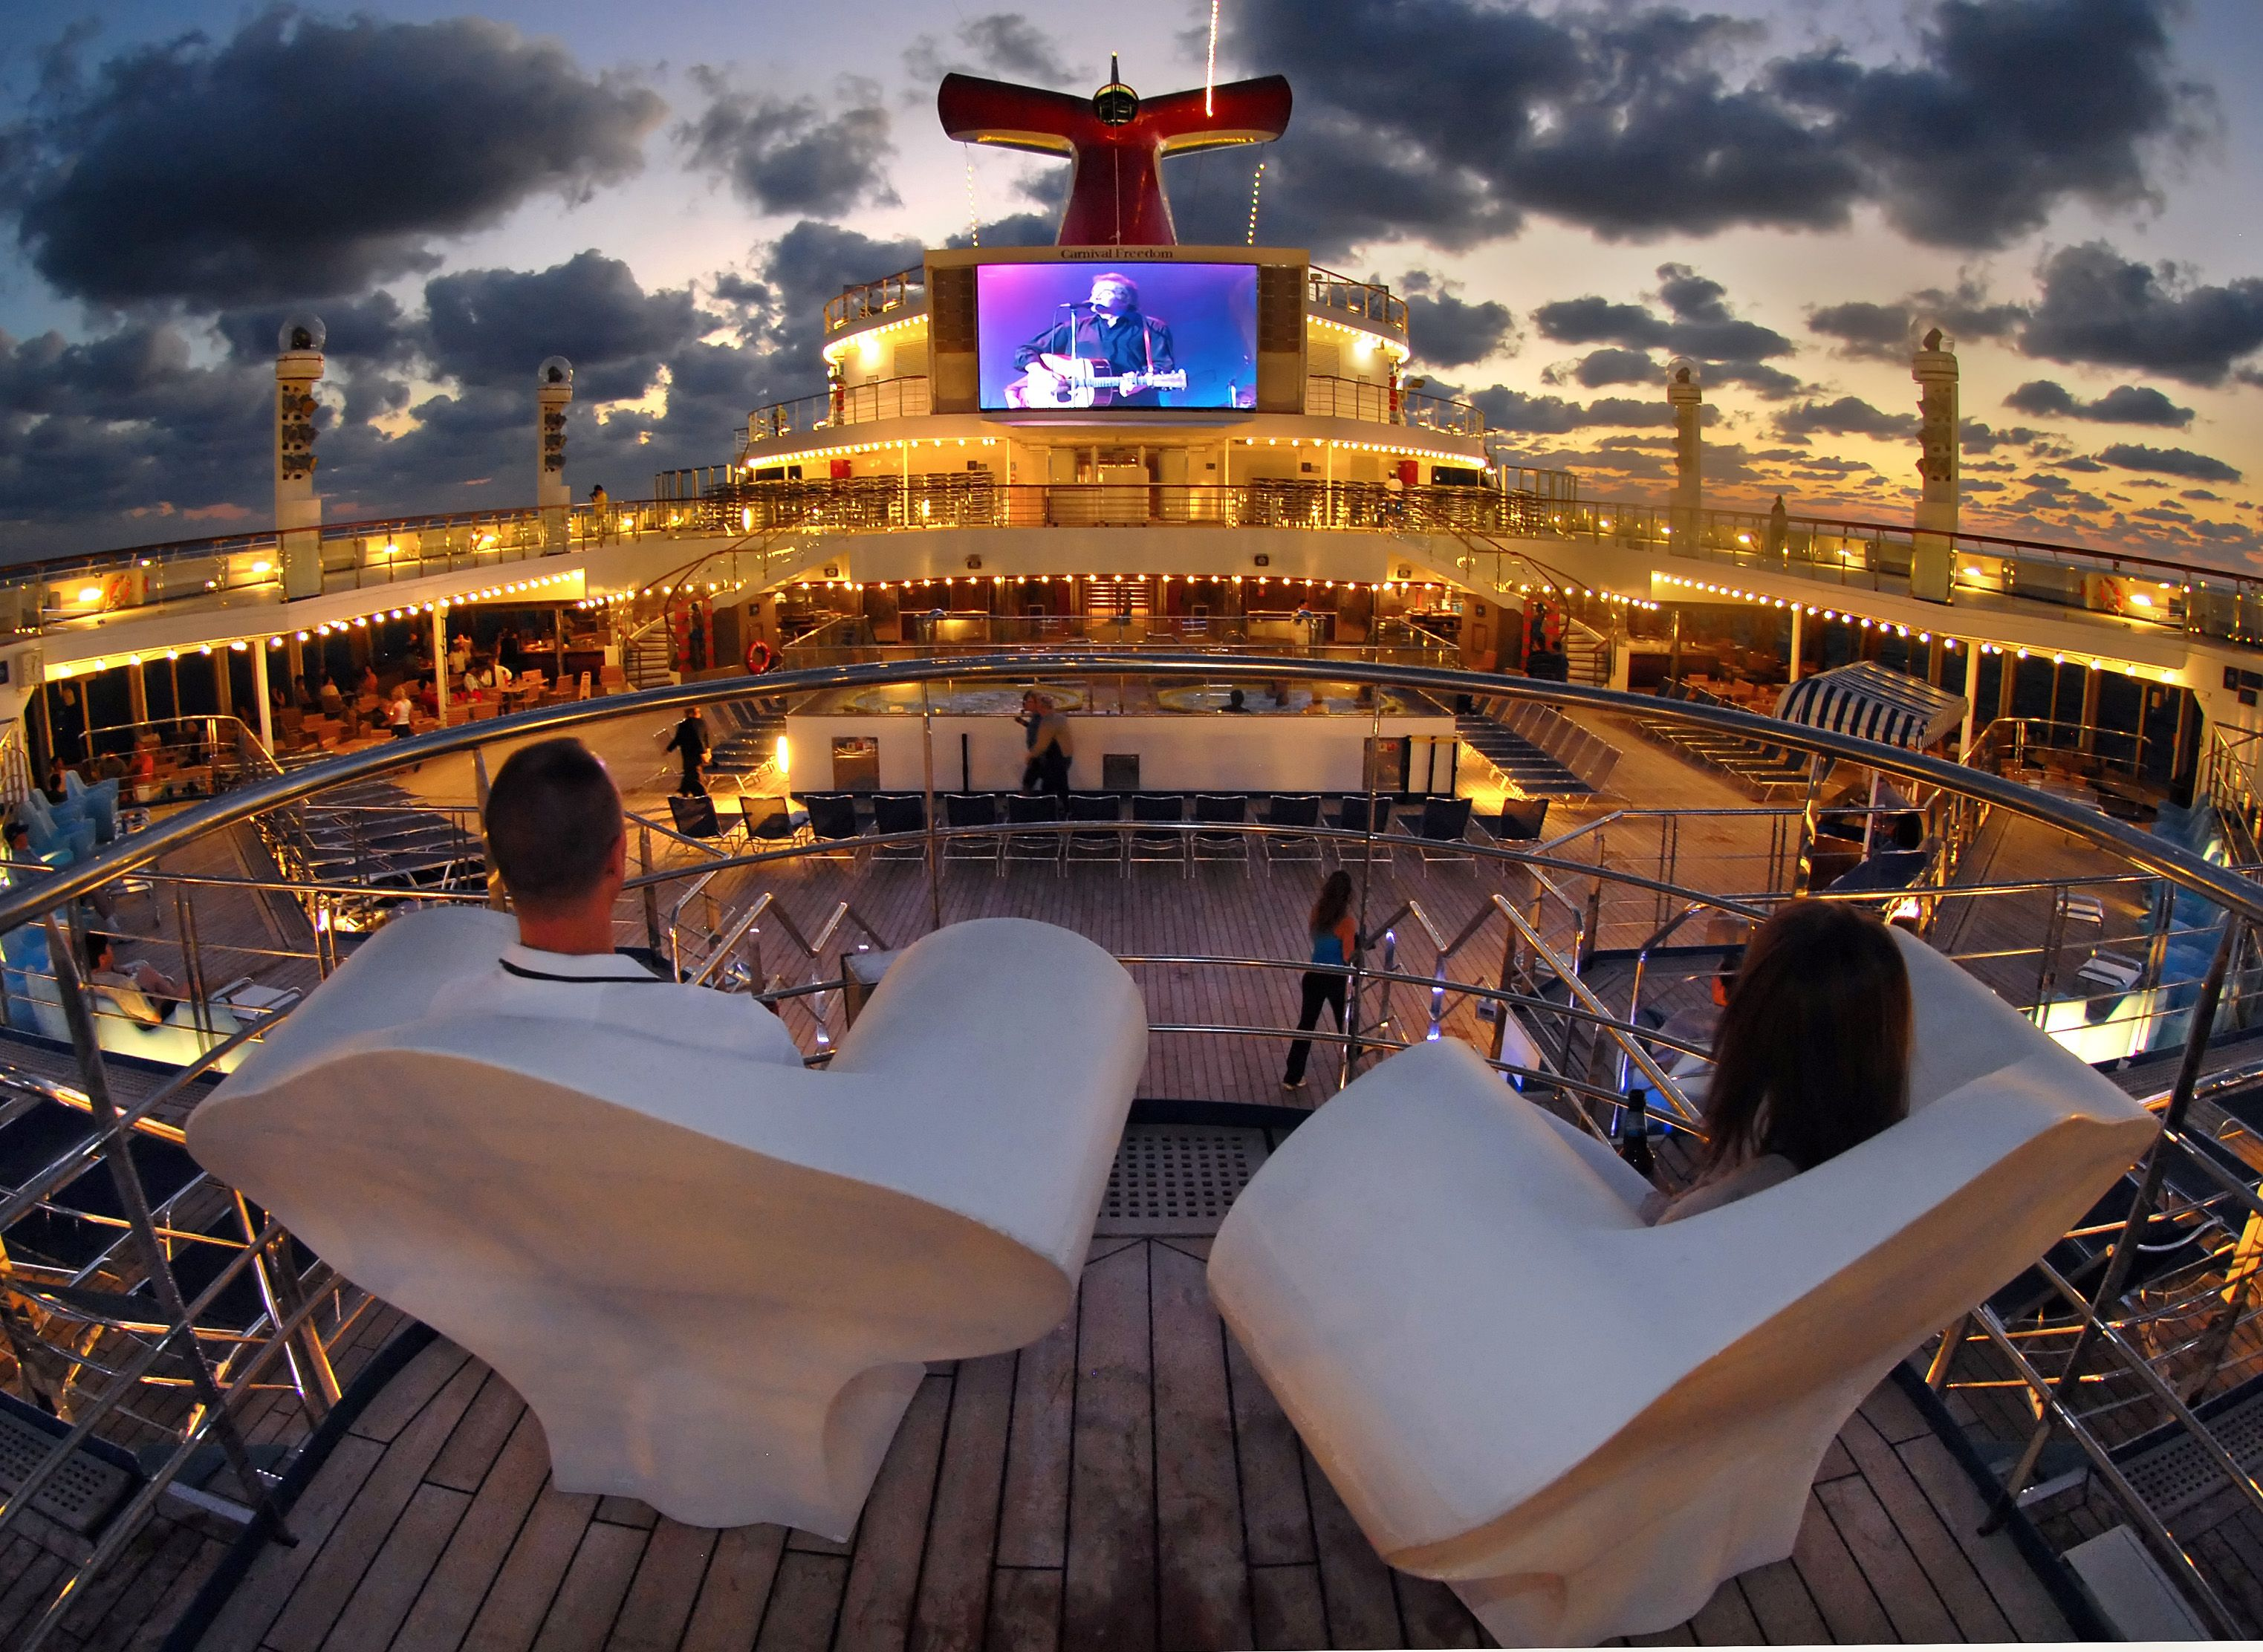 Enjoy The Onboard Entertainment Cruise Ships Have At Least